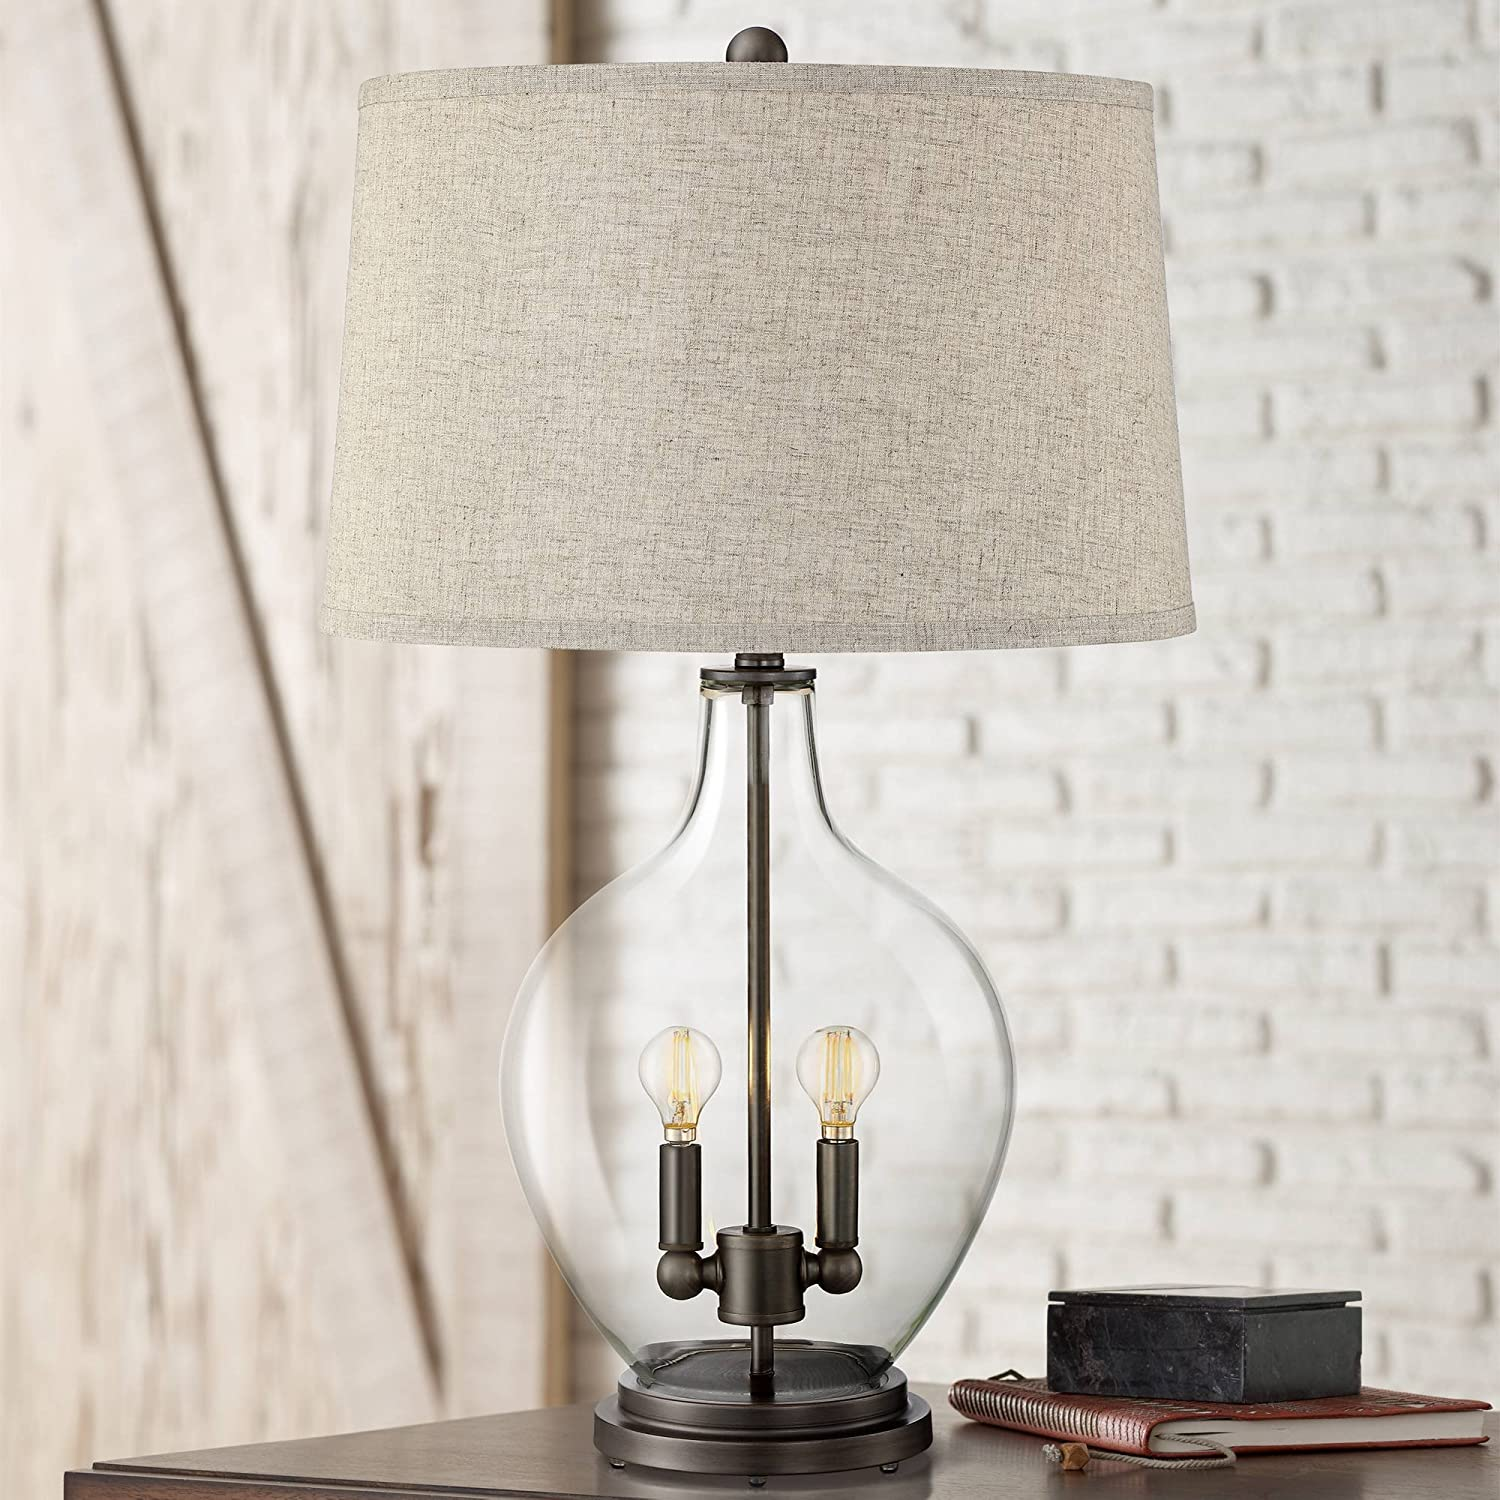 Becker Cottage Style Table Lamp Cle Nightlight Limited price Price reduction LED Fillable with